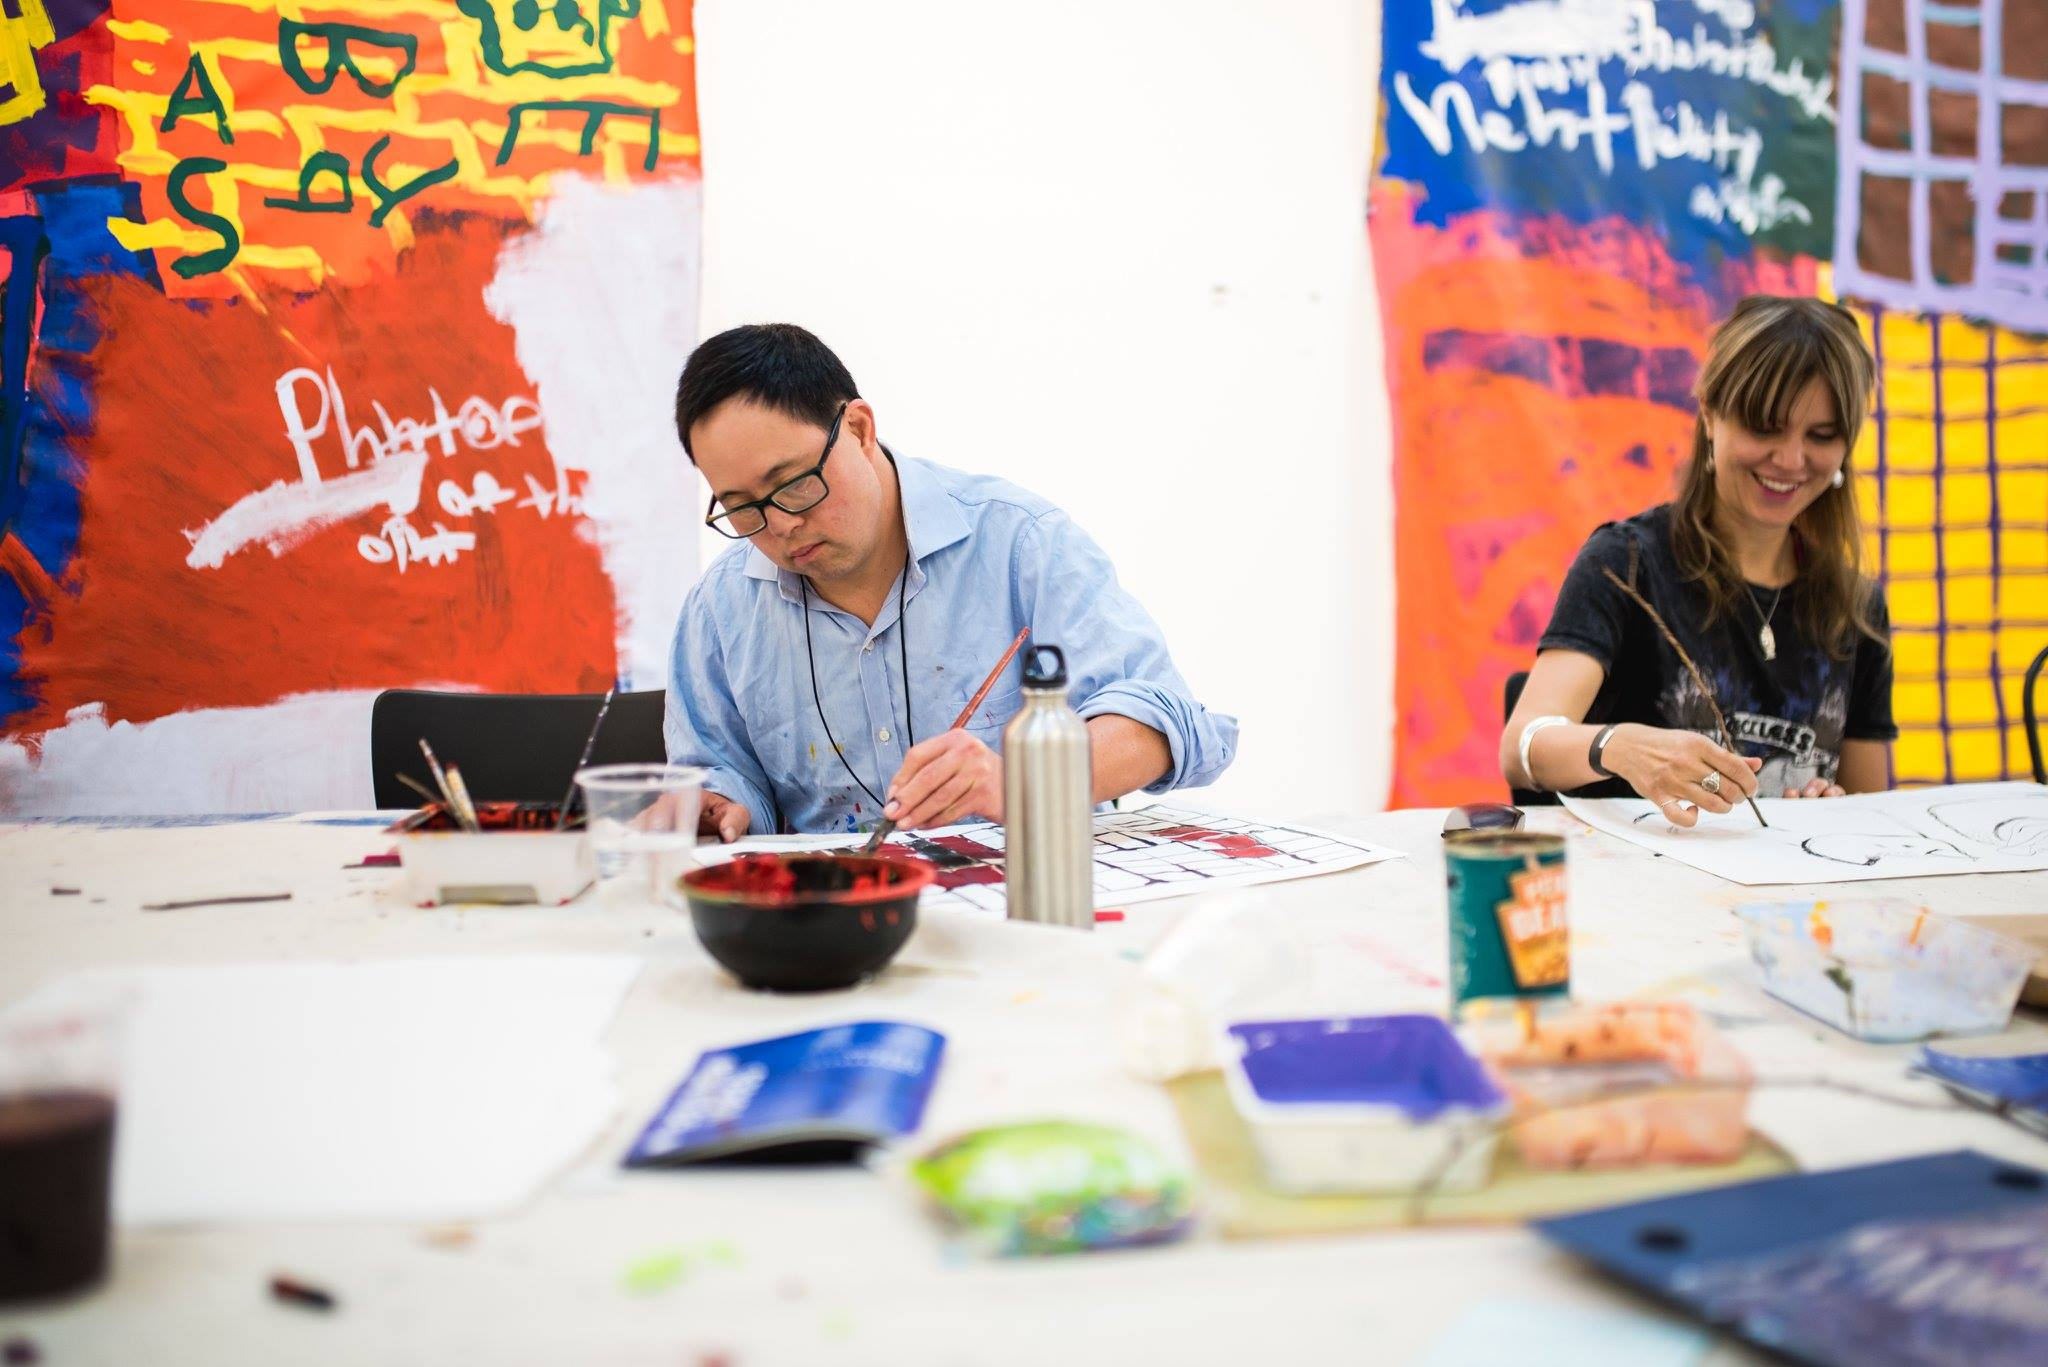 Image: Studio A supported artist, Damien Showyin, leading a painting workshop.